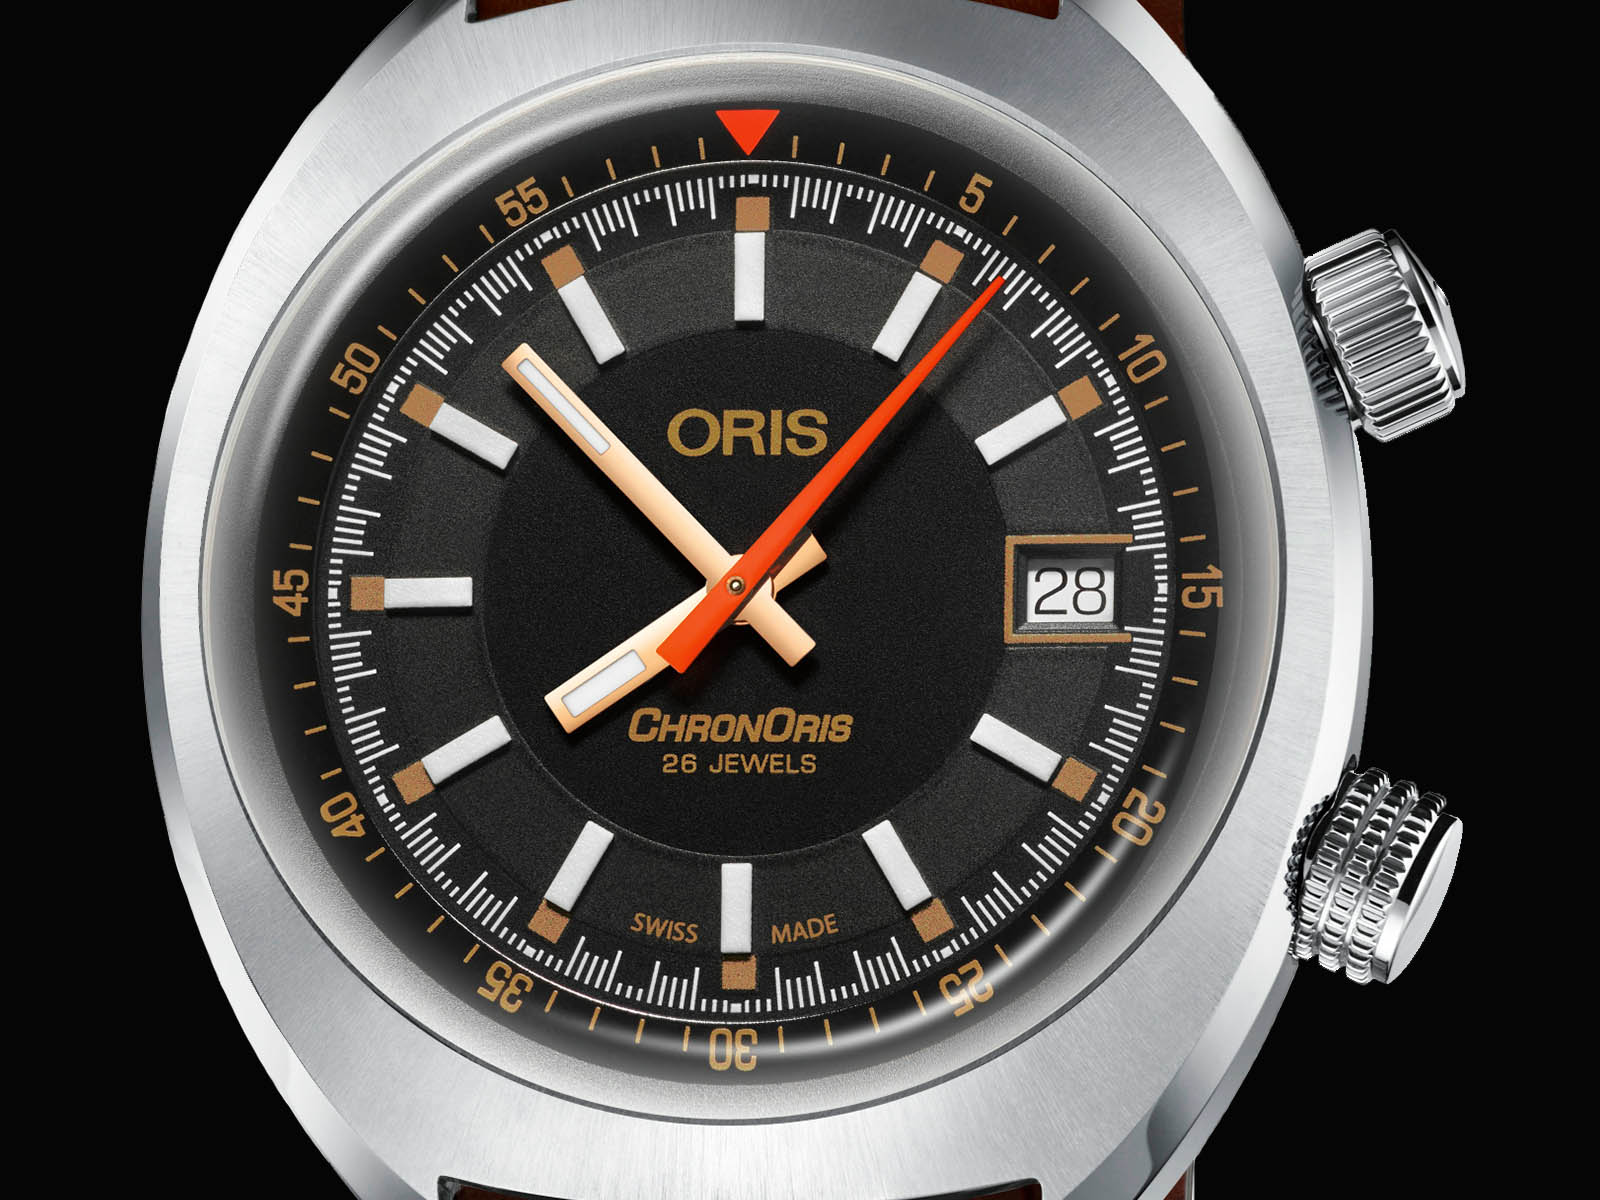 01-733-7737-4034-set-ls-oris-chronoris-movember-edition-5.jpg